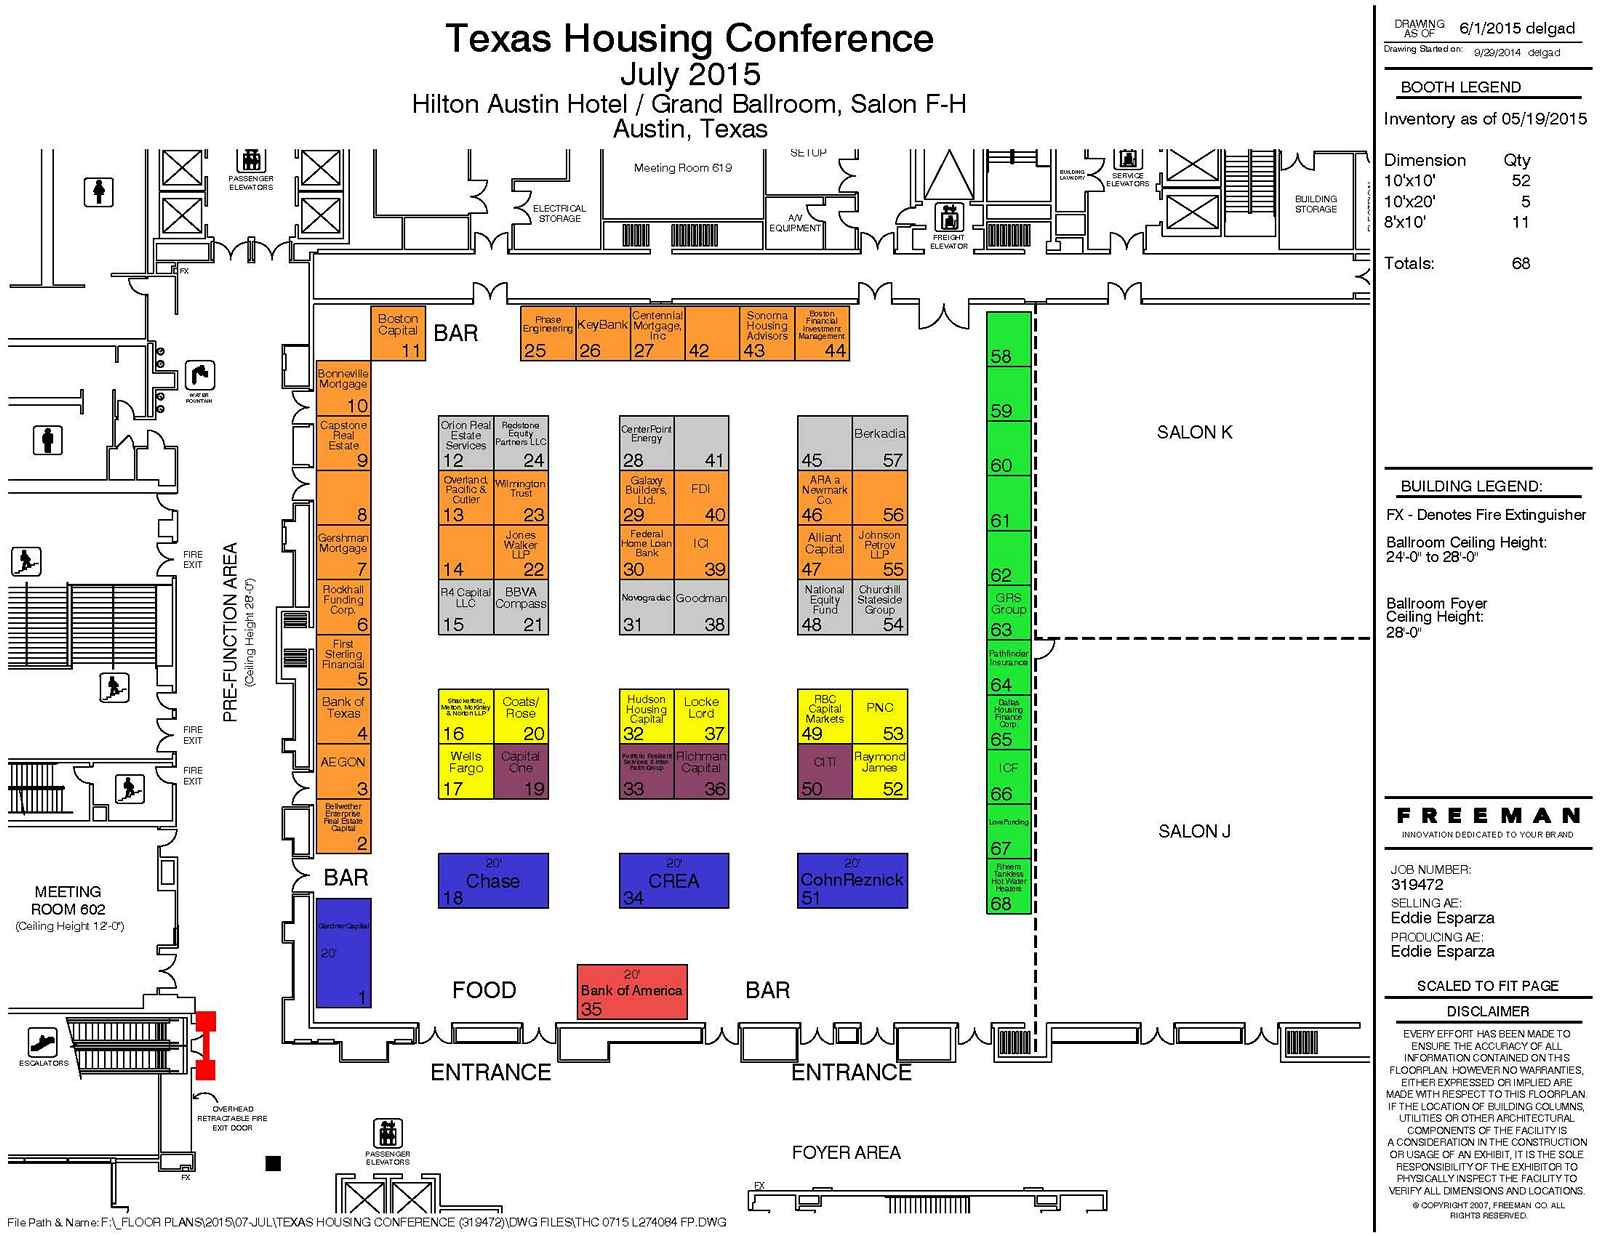 Us At The 2015 Texas Housing Conference